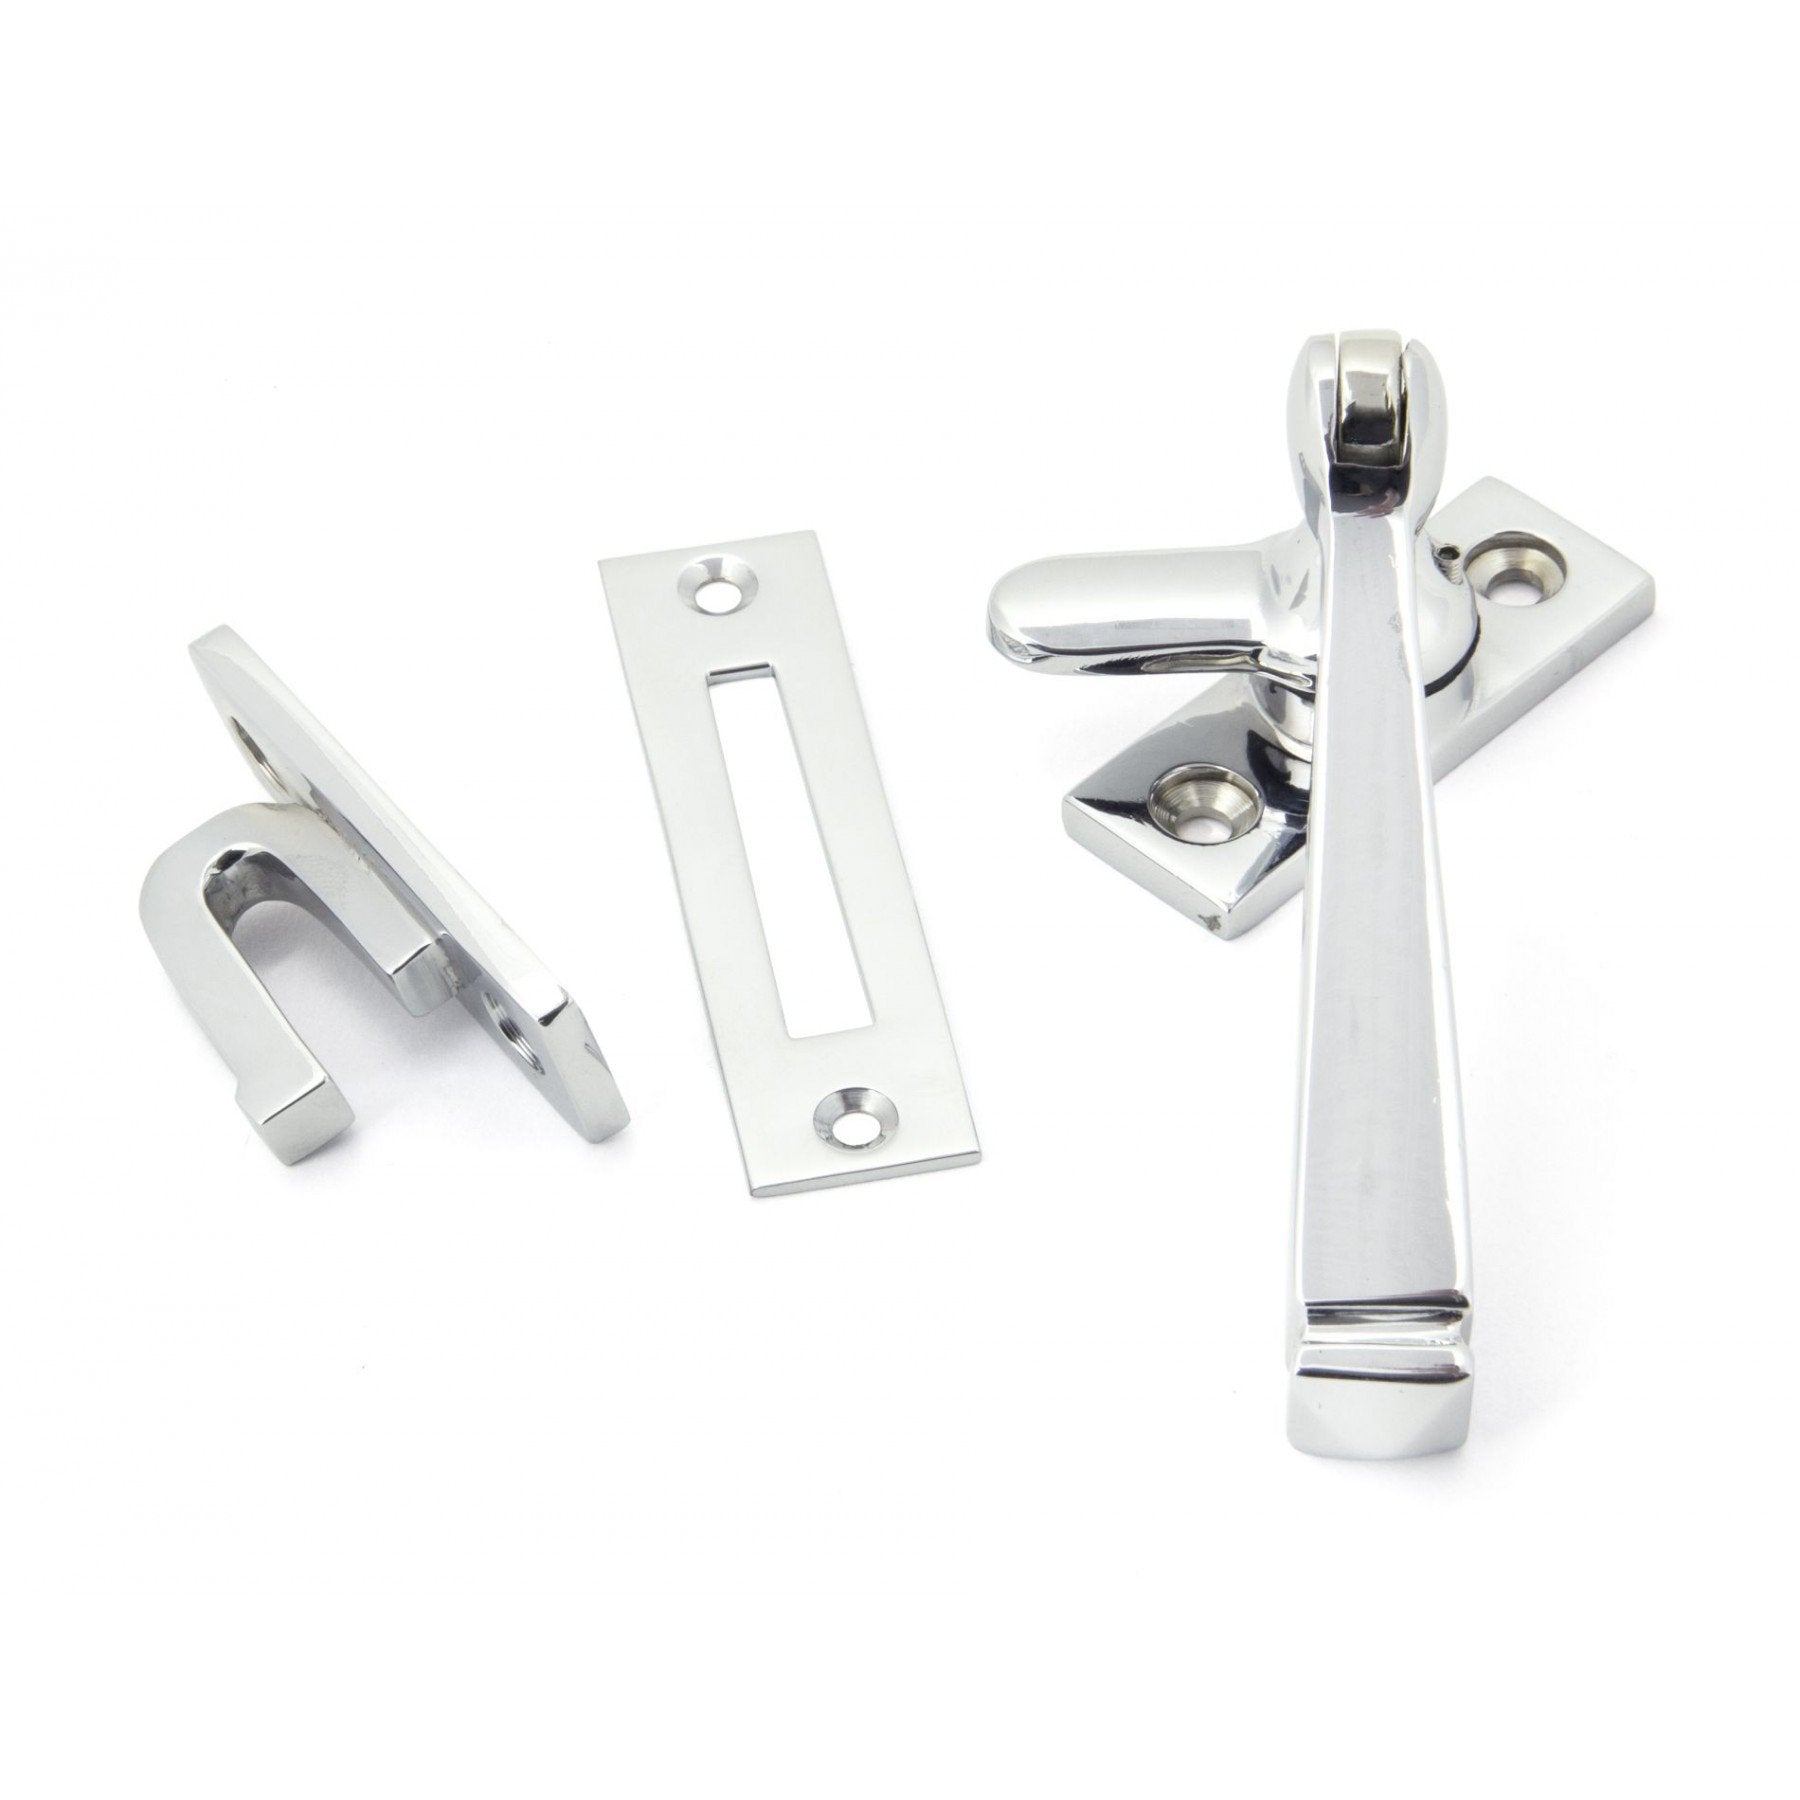 Polished Chrome Locking Avon Fastener - No.42 Interiors